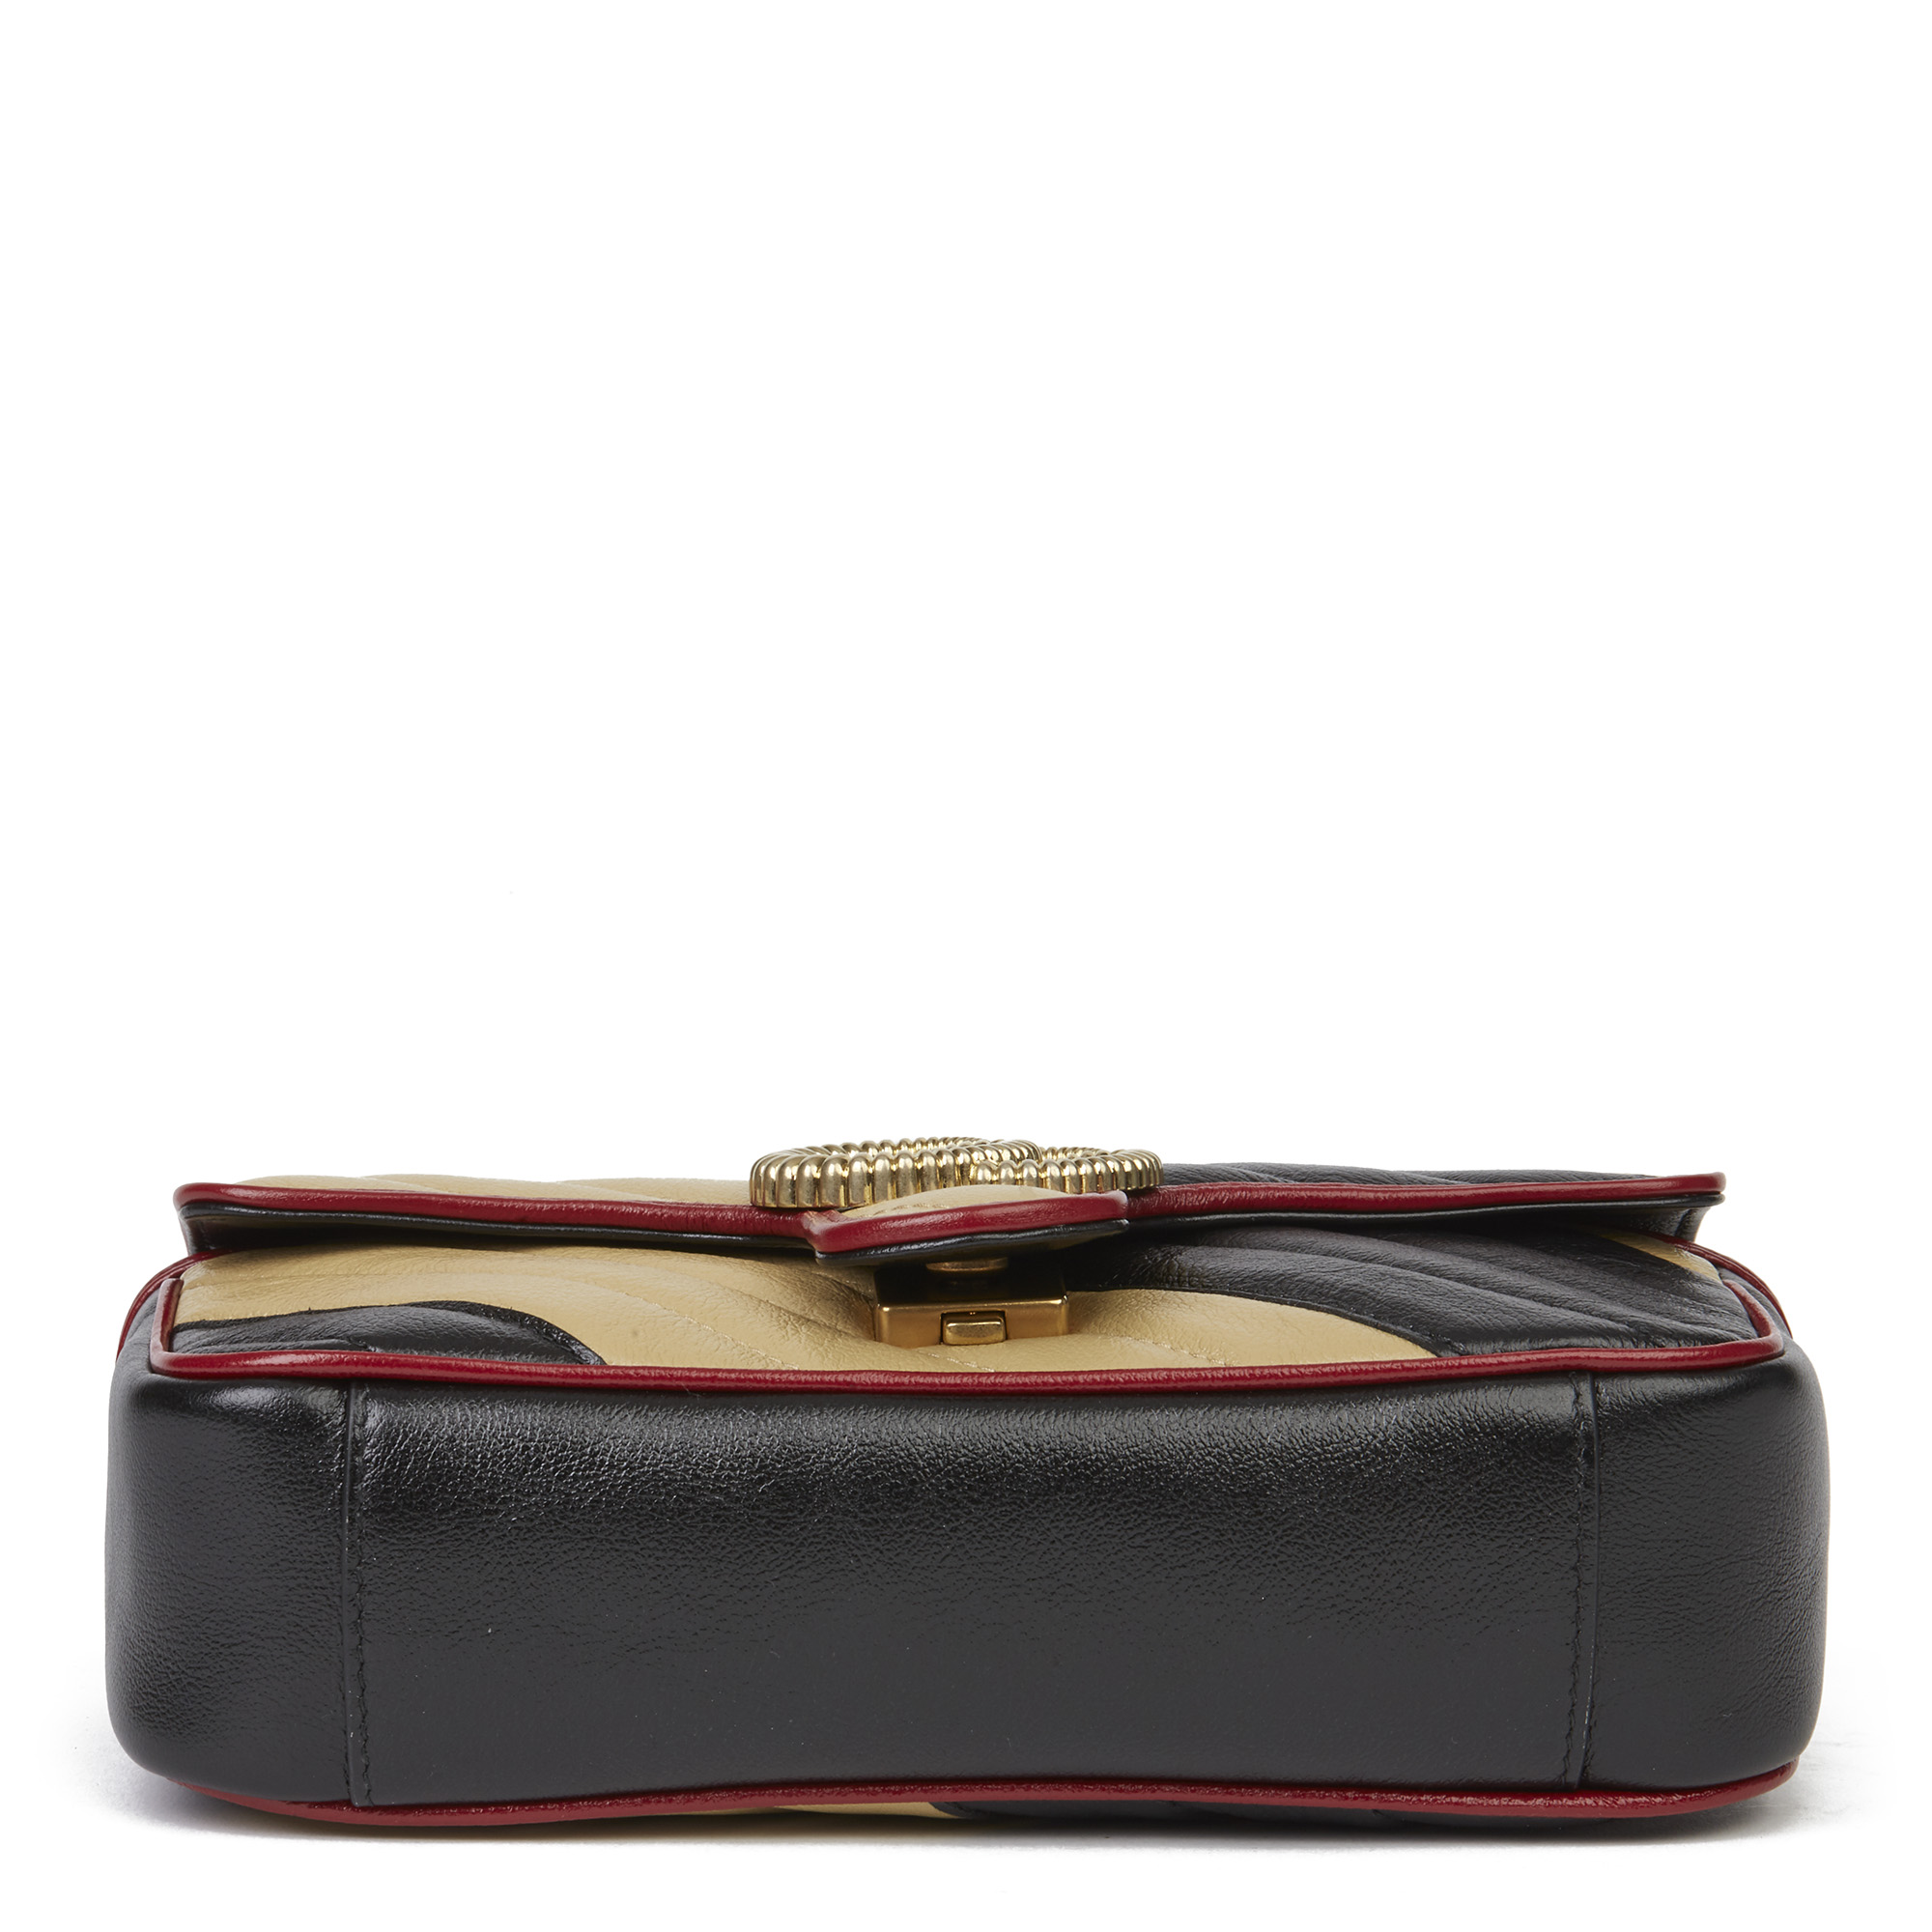 Gucci Black, Cream & Red Diagonal Quilted Aged Calfskin Leather Mini Marmont - Image 9 of 12